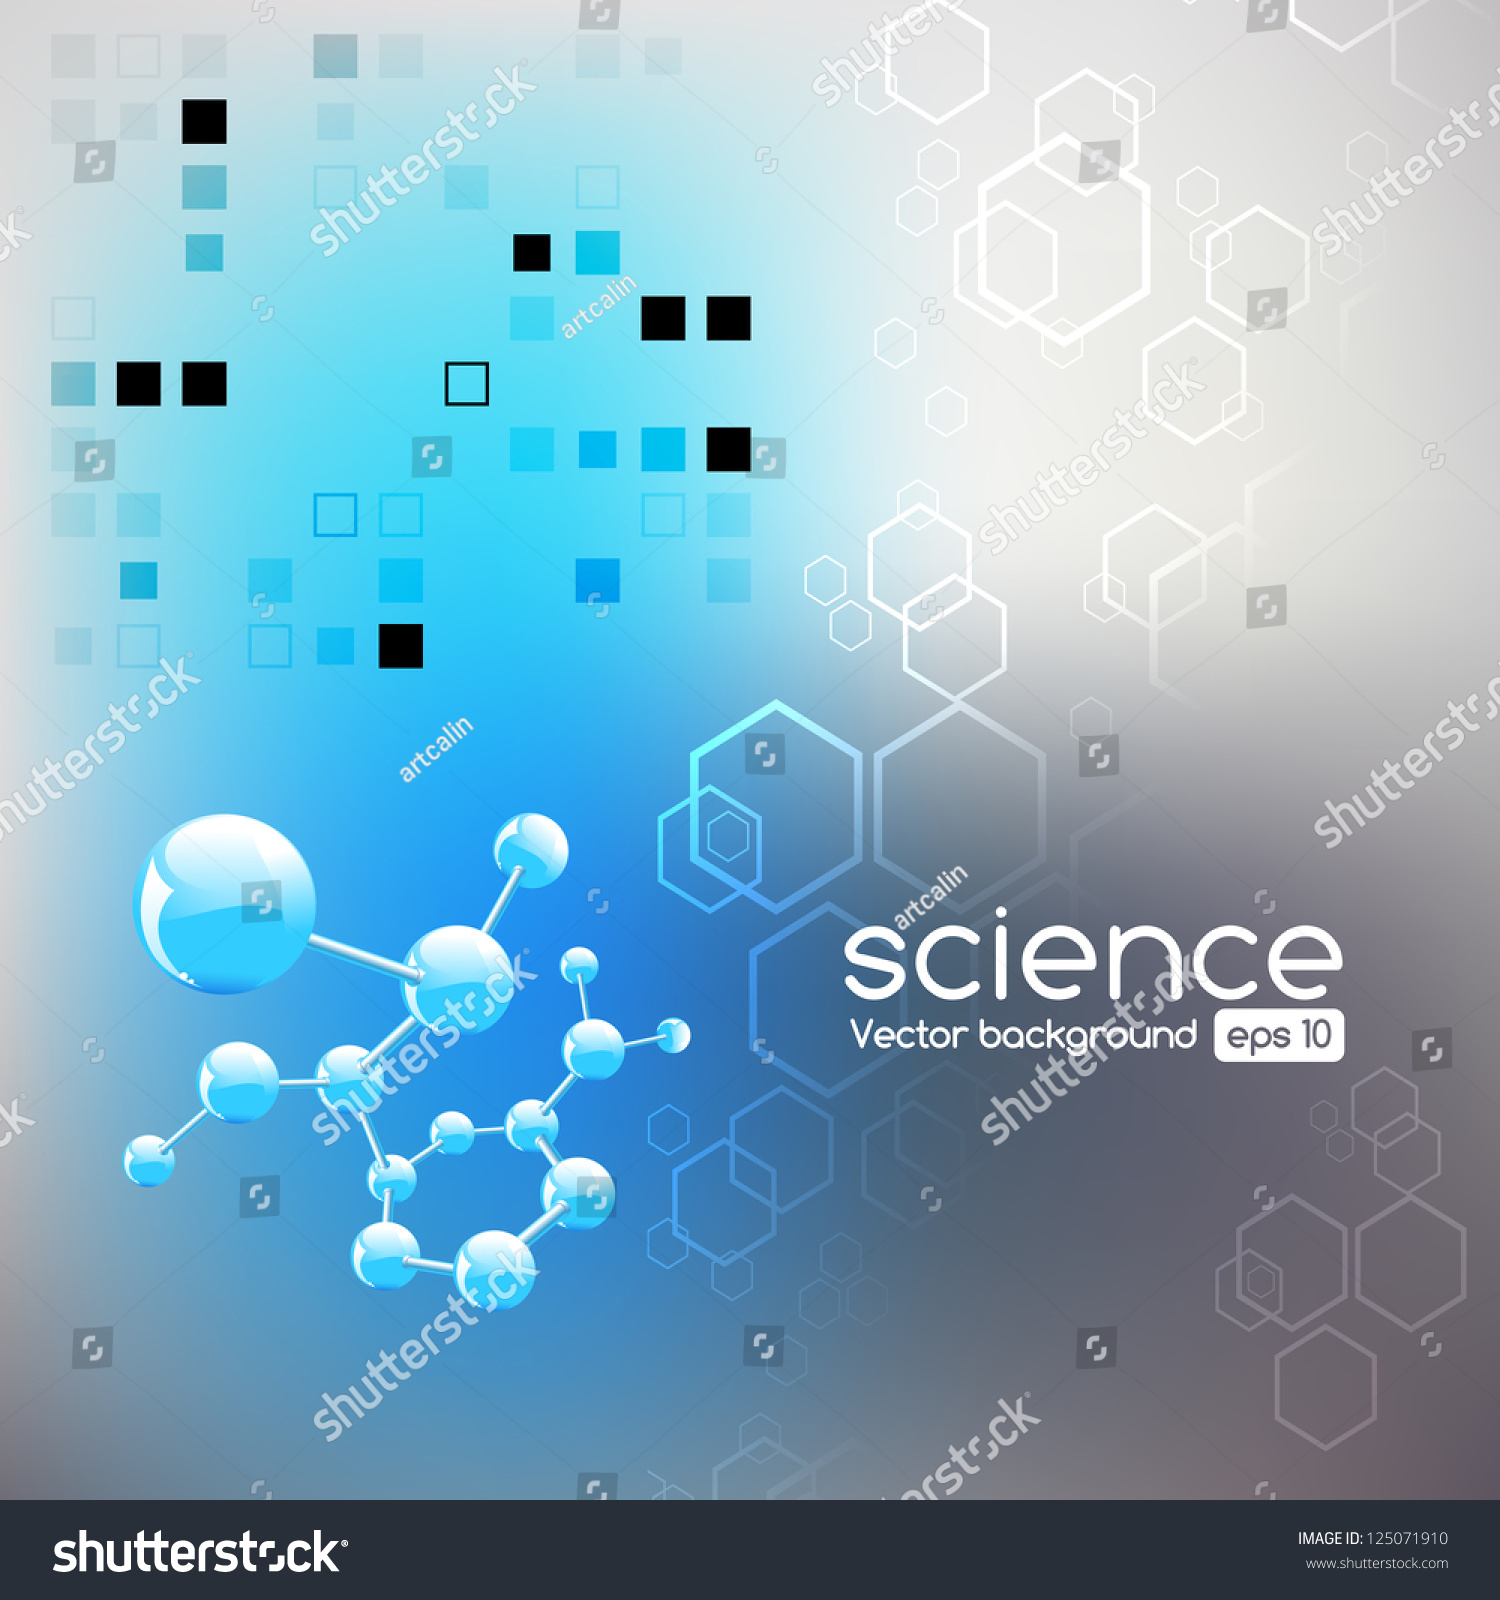 science and technology wallpaper - photo #46